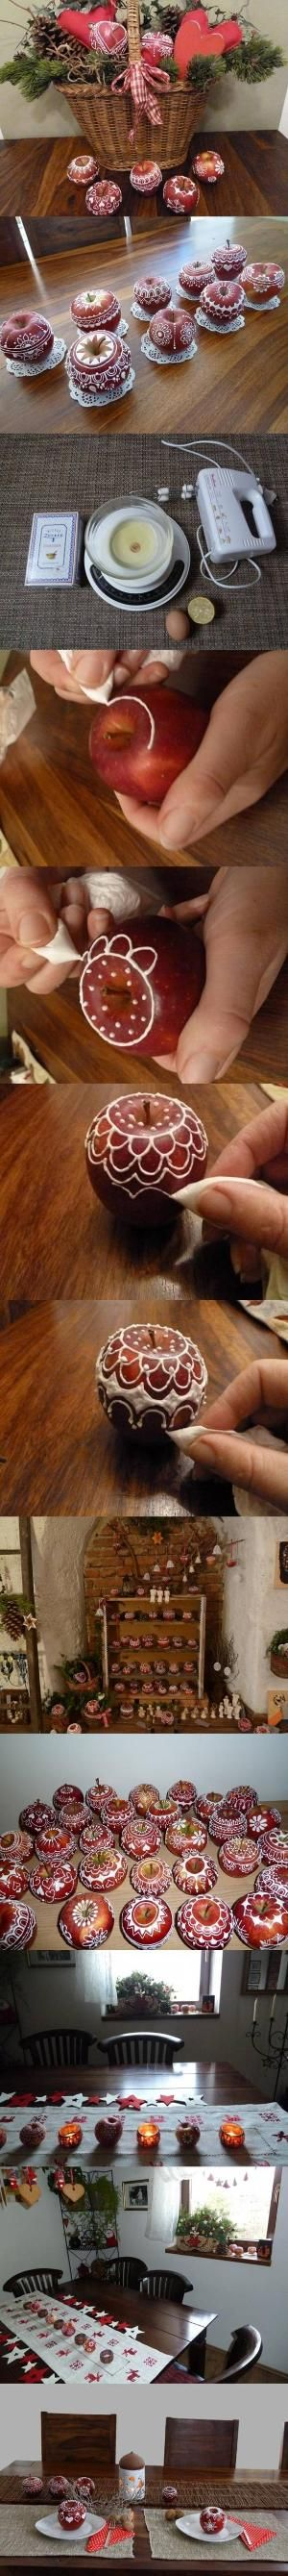 DIY Decorated Apples DIY Decorated Apples by diyforever